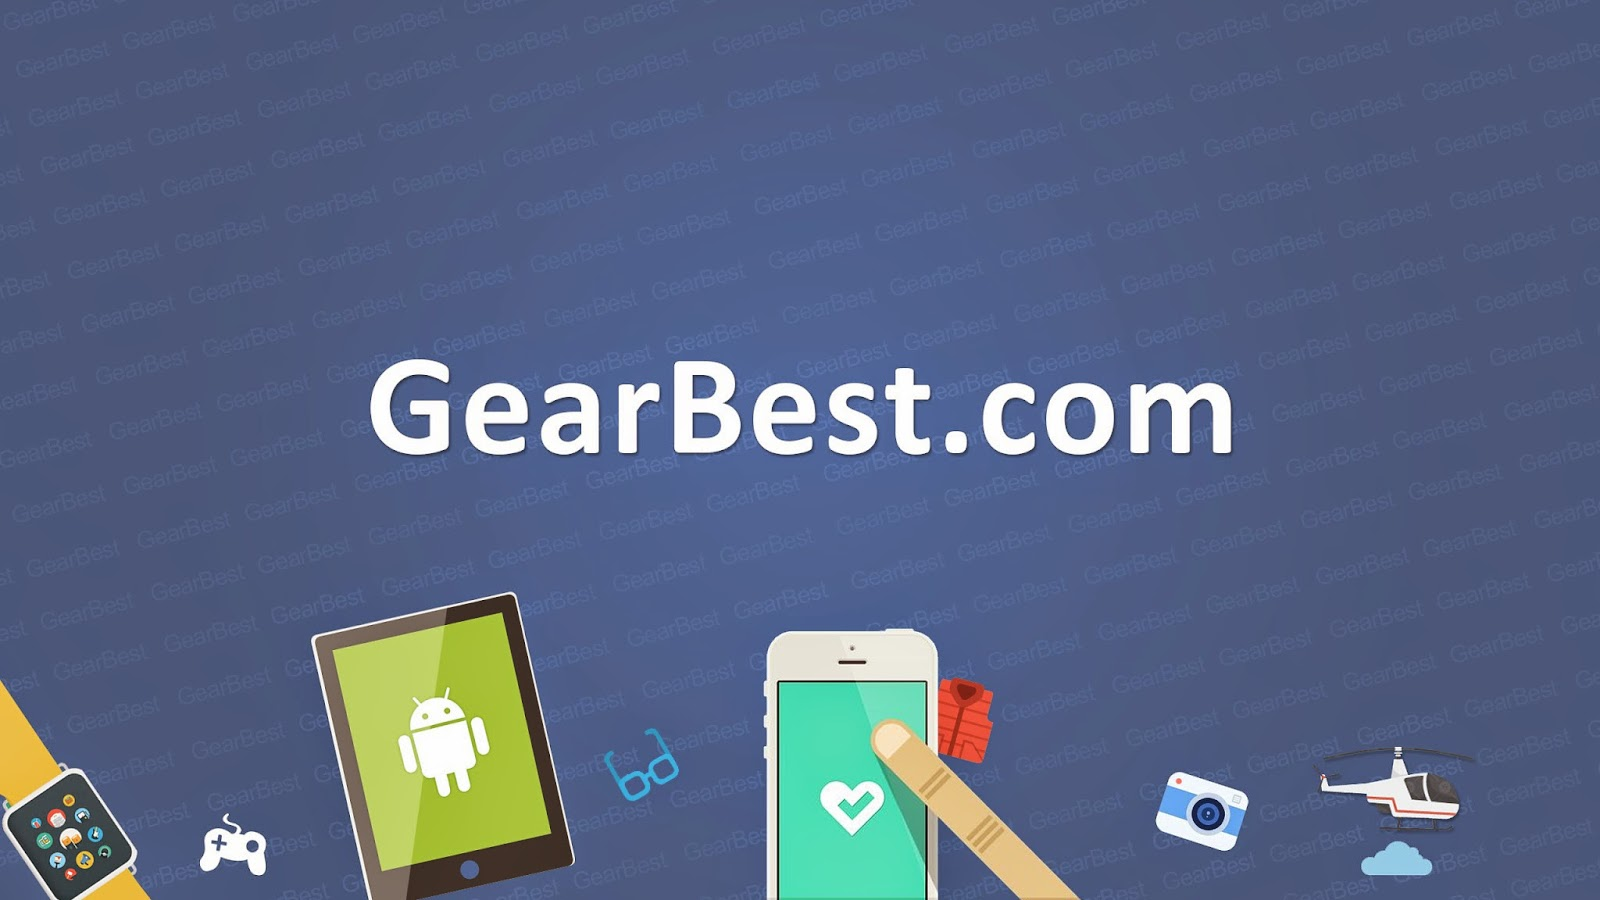 gearbest-double-11-sale.jpg?fit=1600%2C900